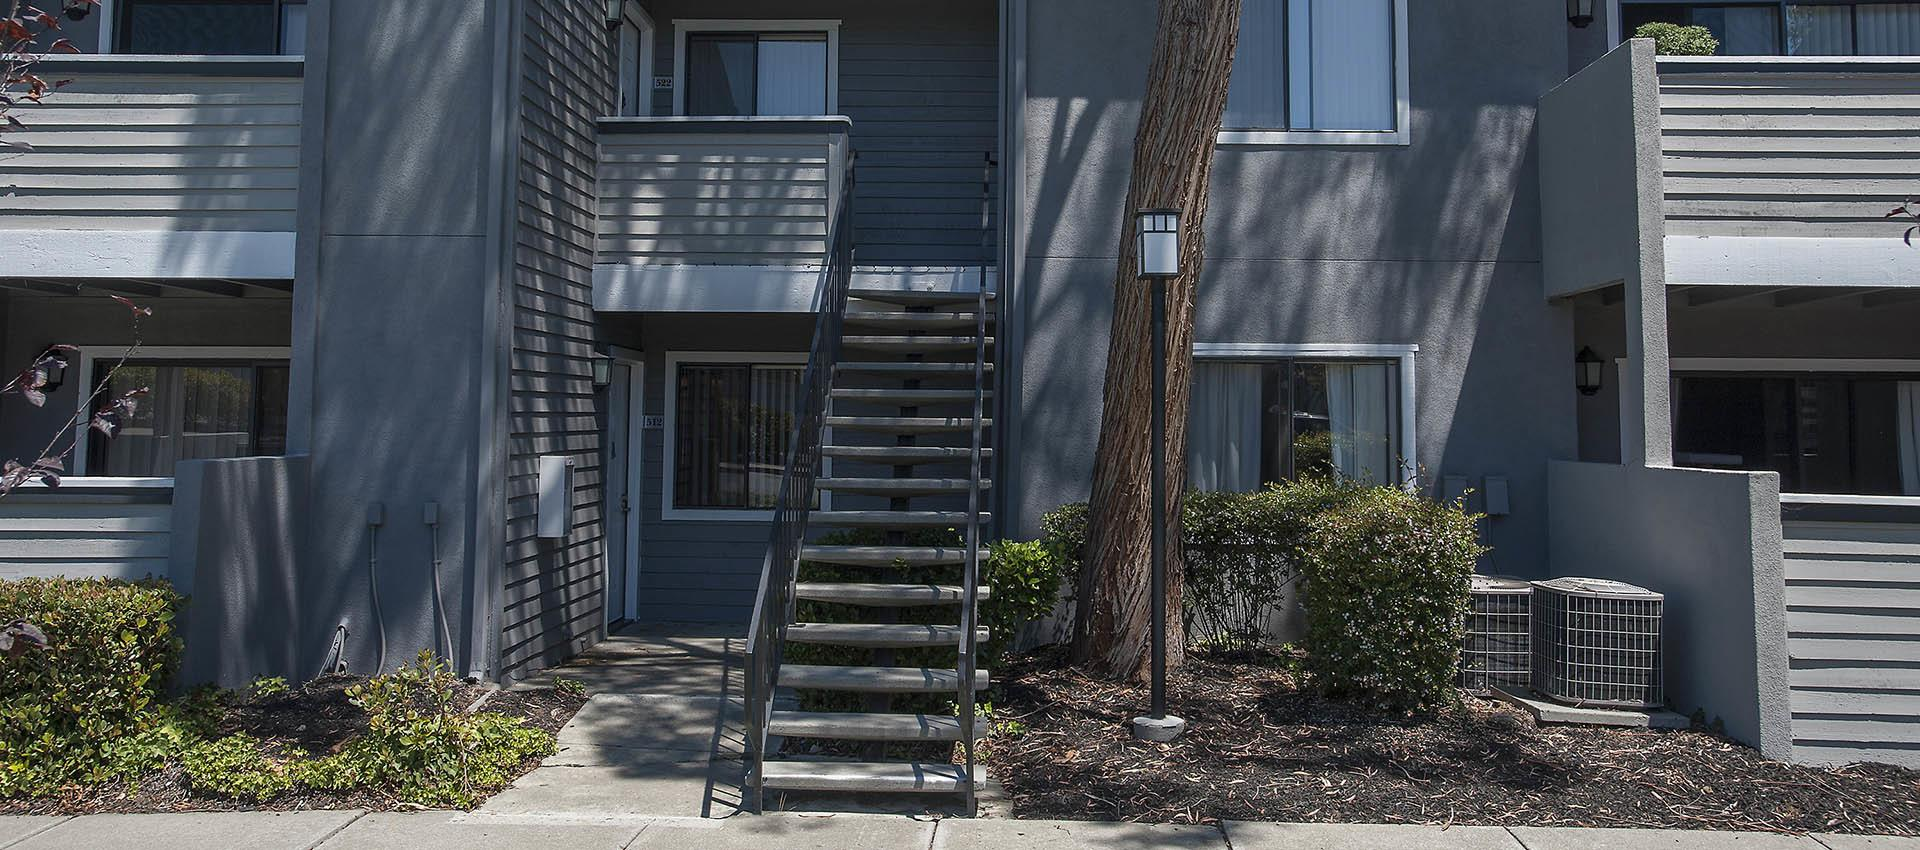 Stairs To Second Level Apartments at Plum Tree Apartment Homes in Martinez, California